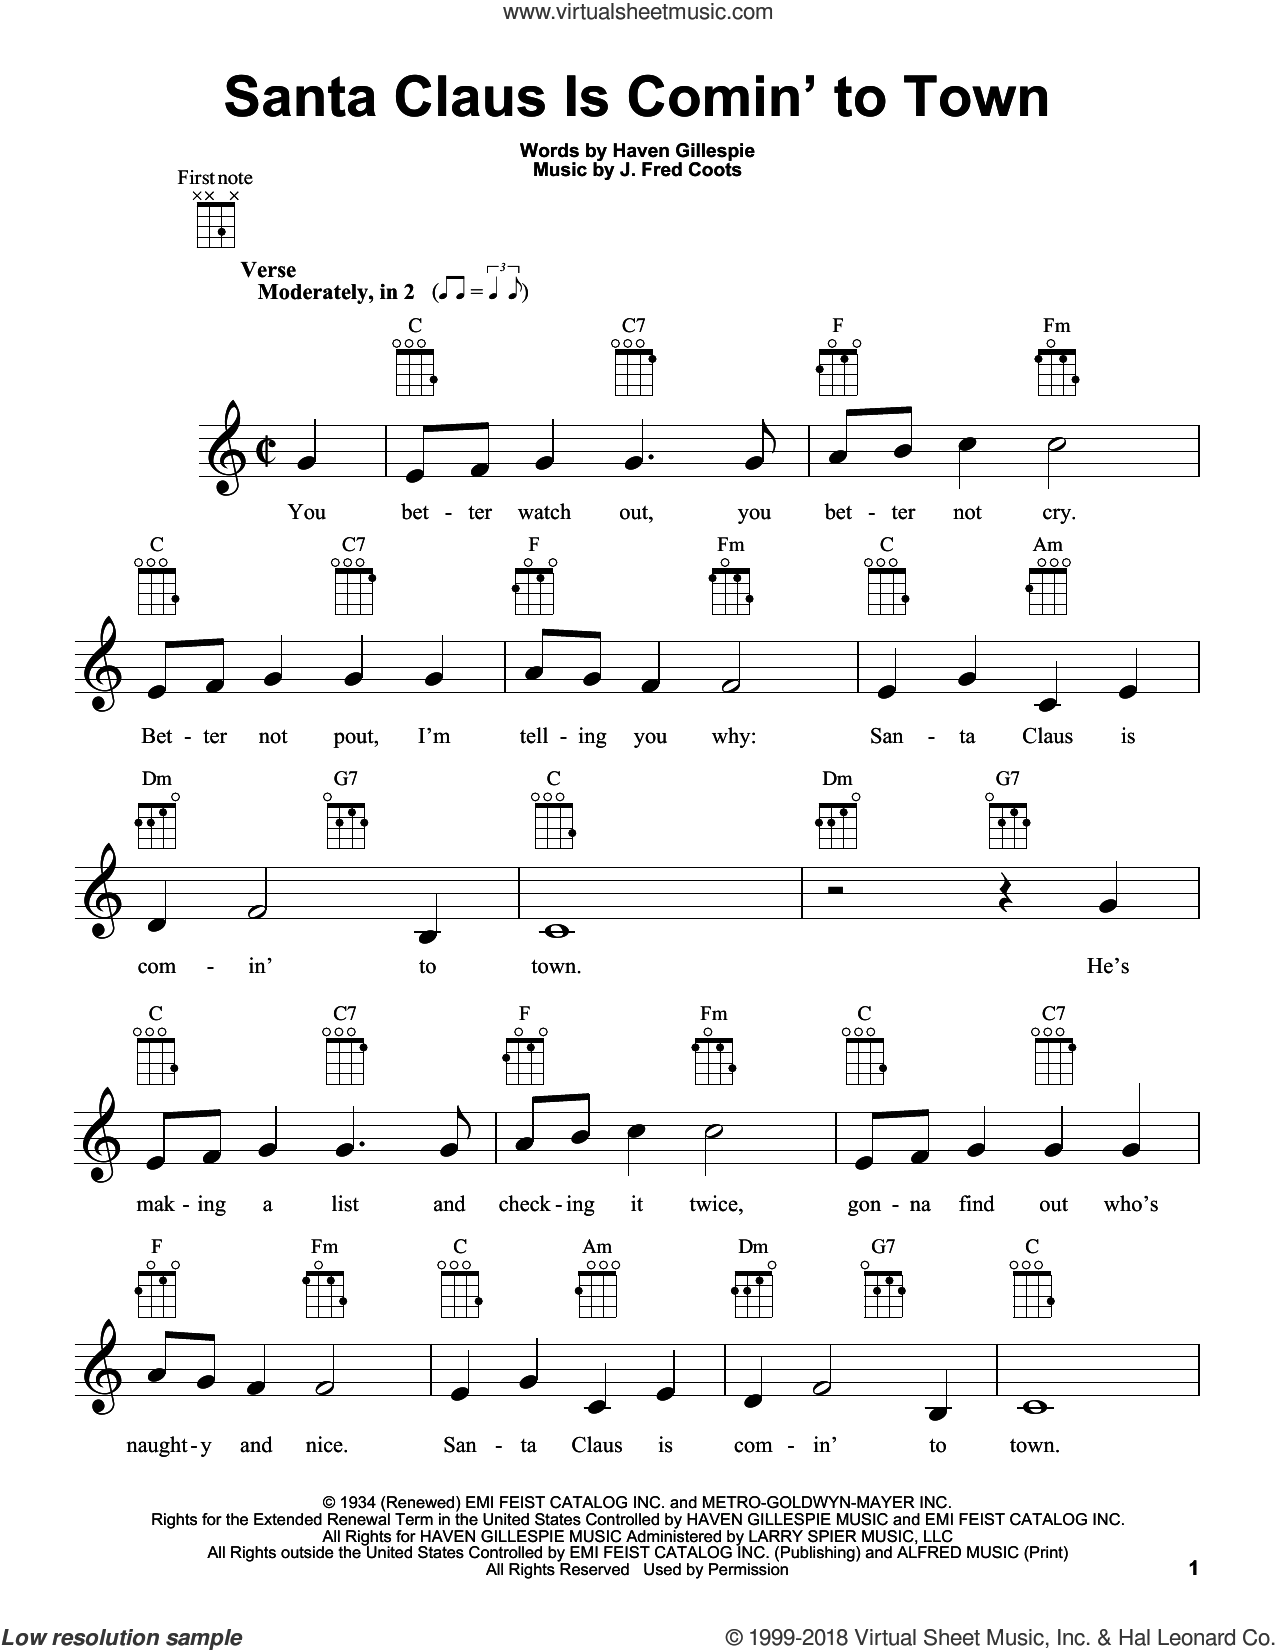 Santa Claus Is Comin' To Town sheet music for ukulele by Haven Gillespie